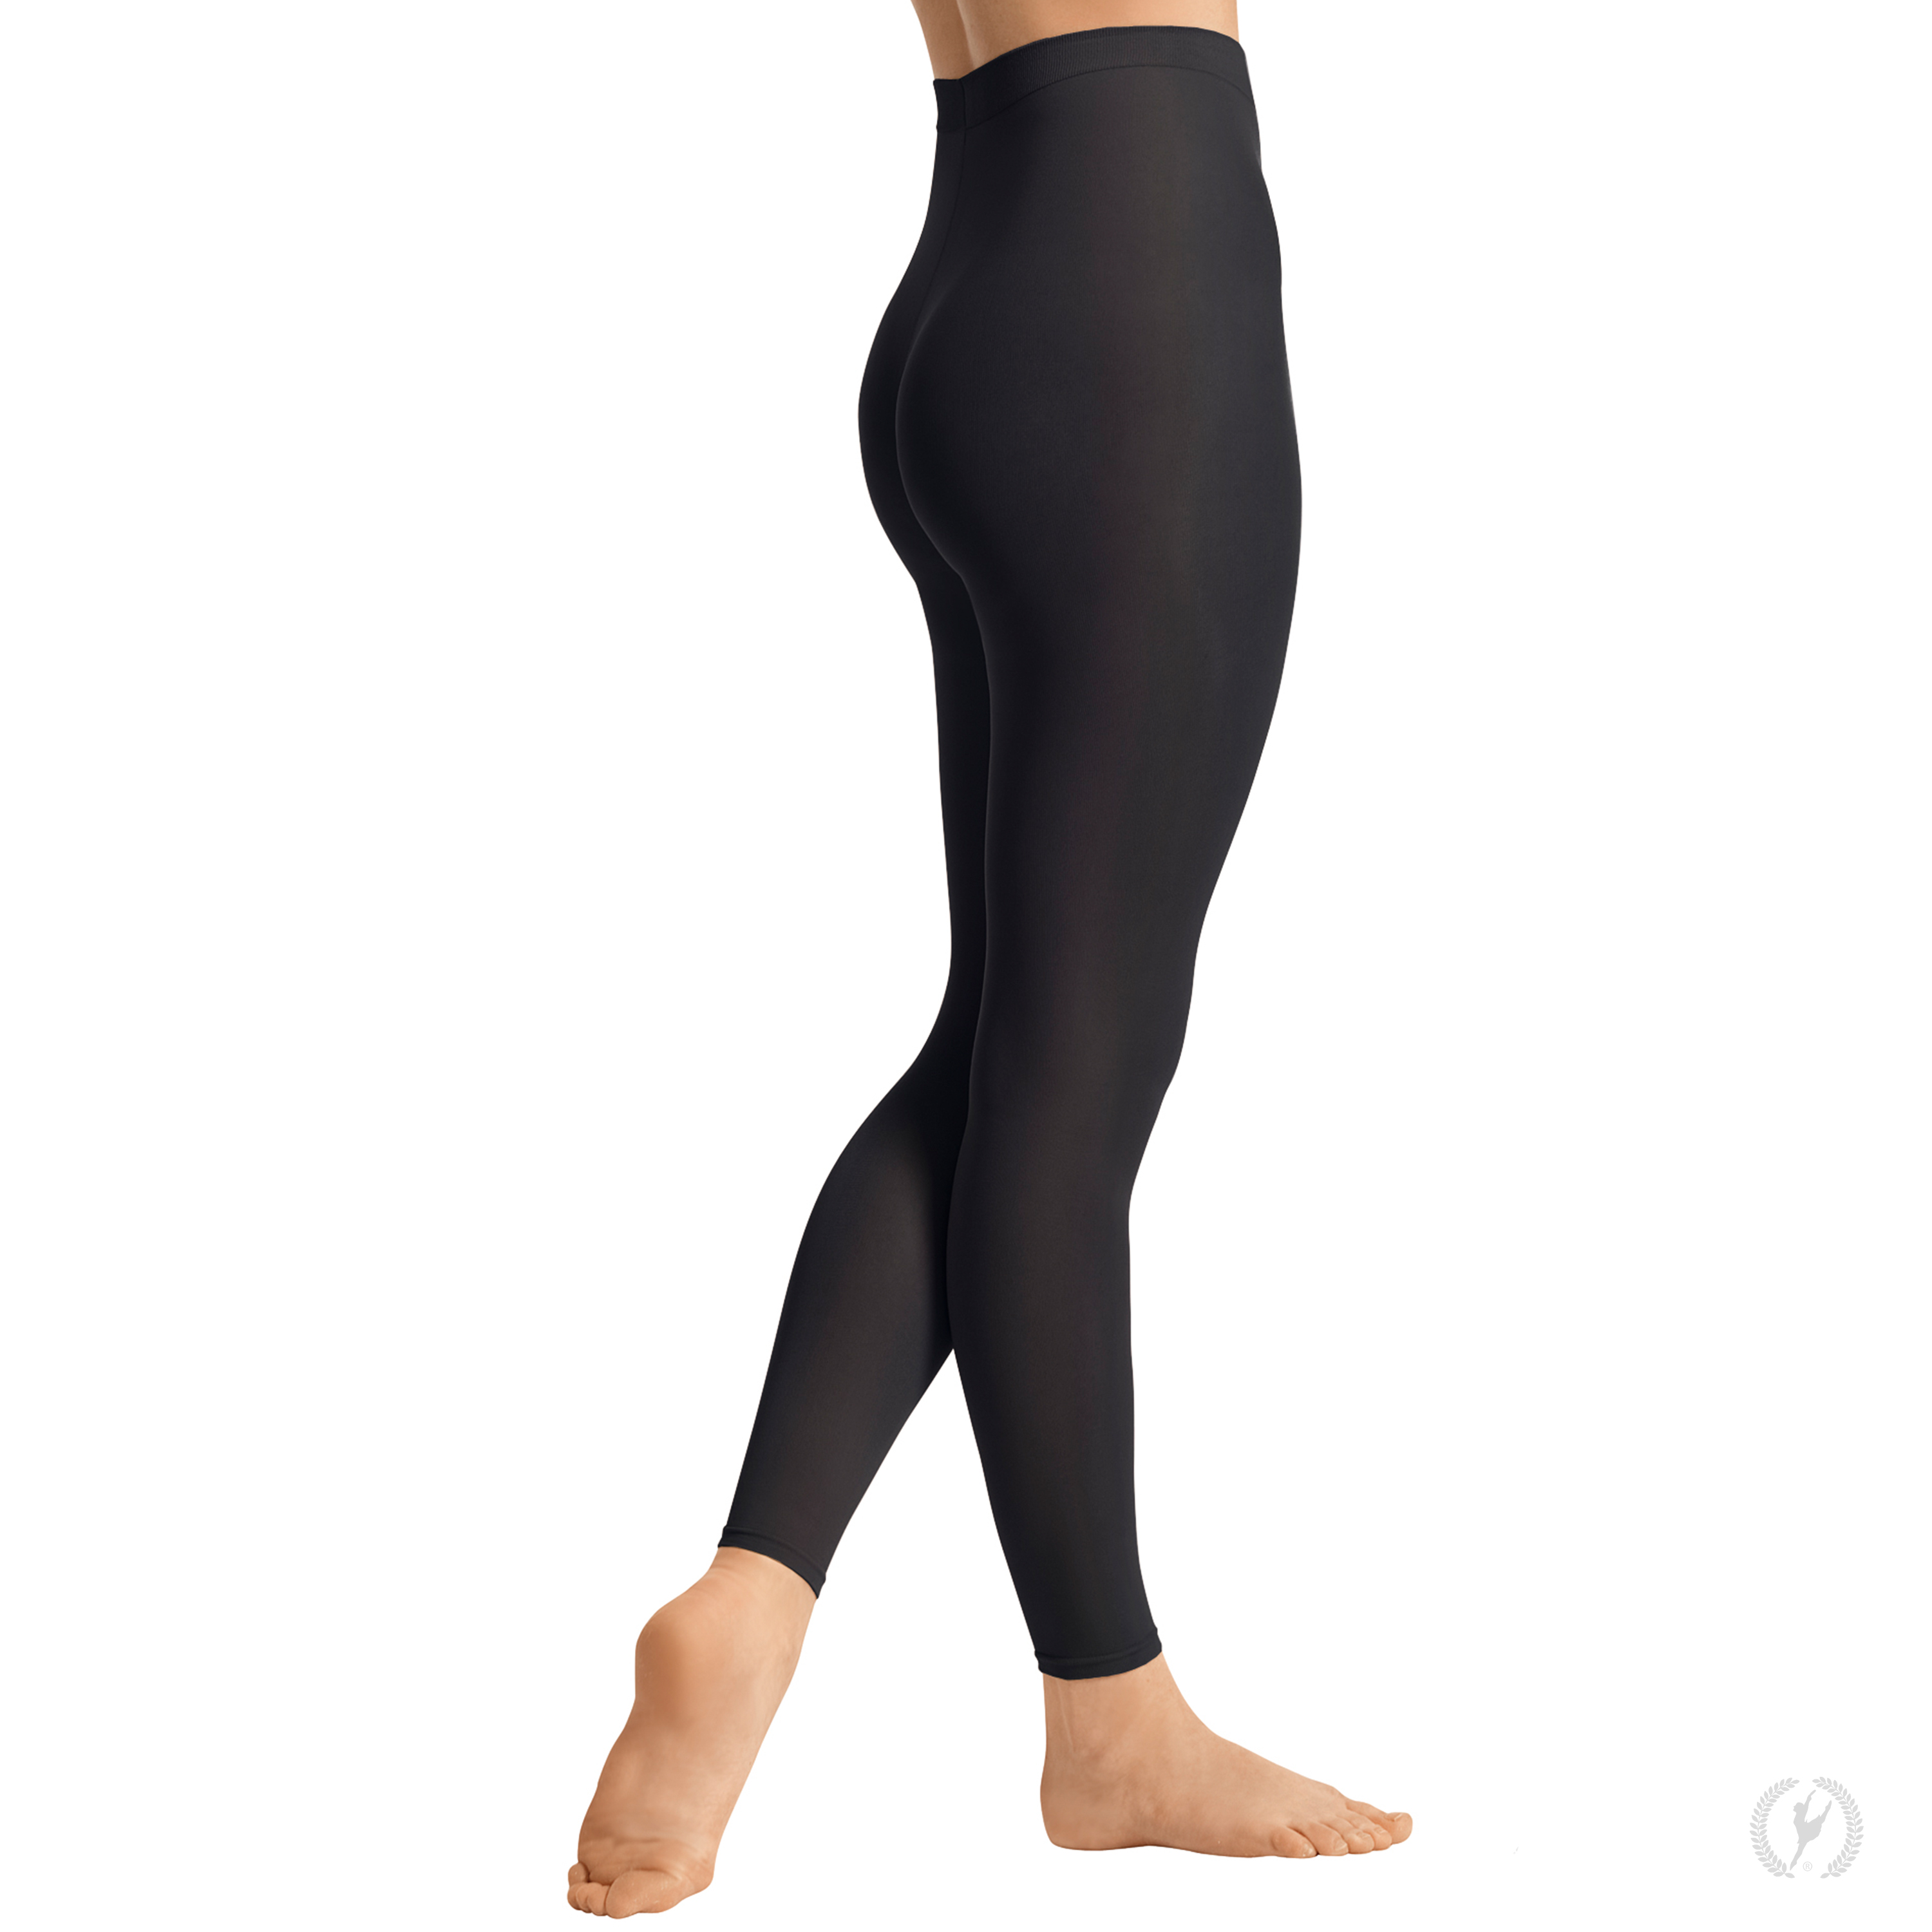 81a10bc79 212 - Eurotard Womens Non-Run Footless Tights with Soft Knit Waistband by  EuroSkins